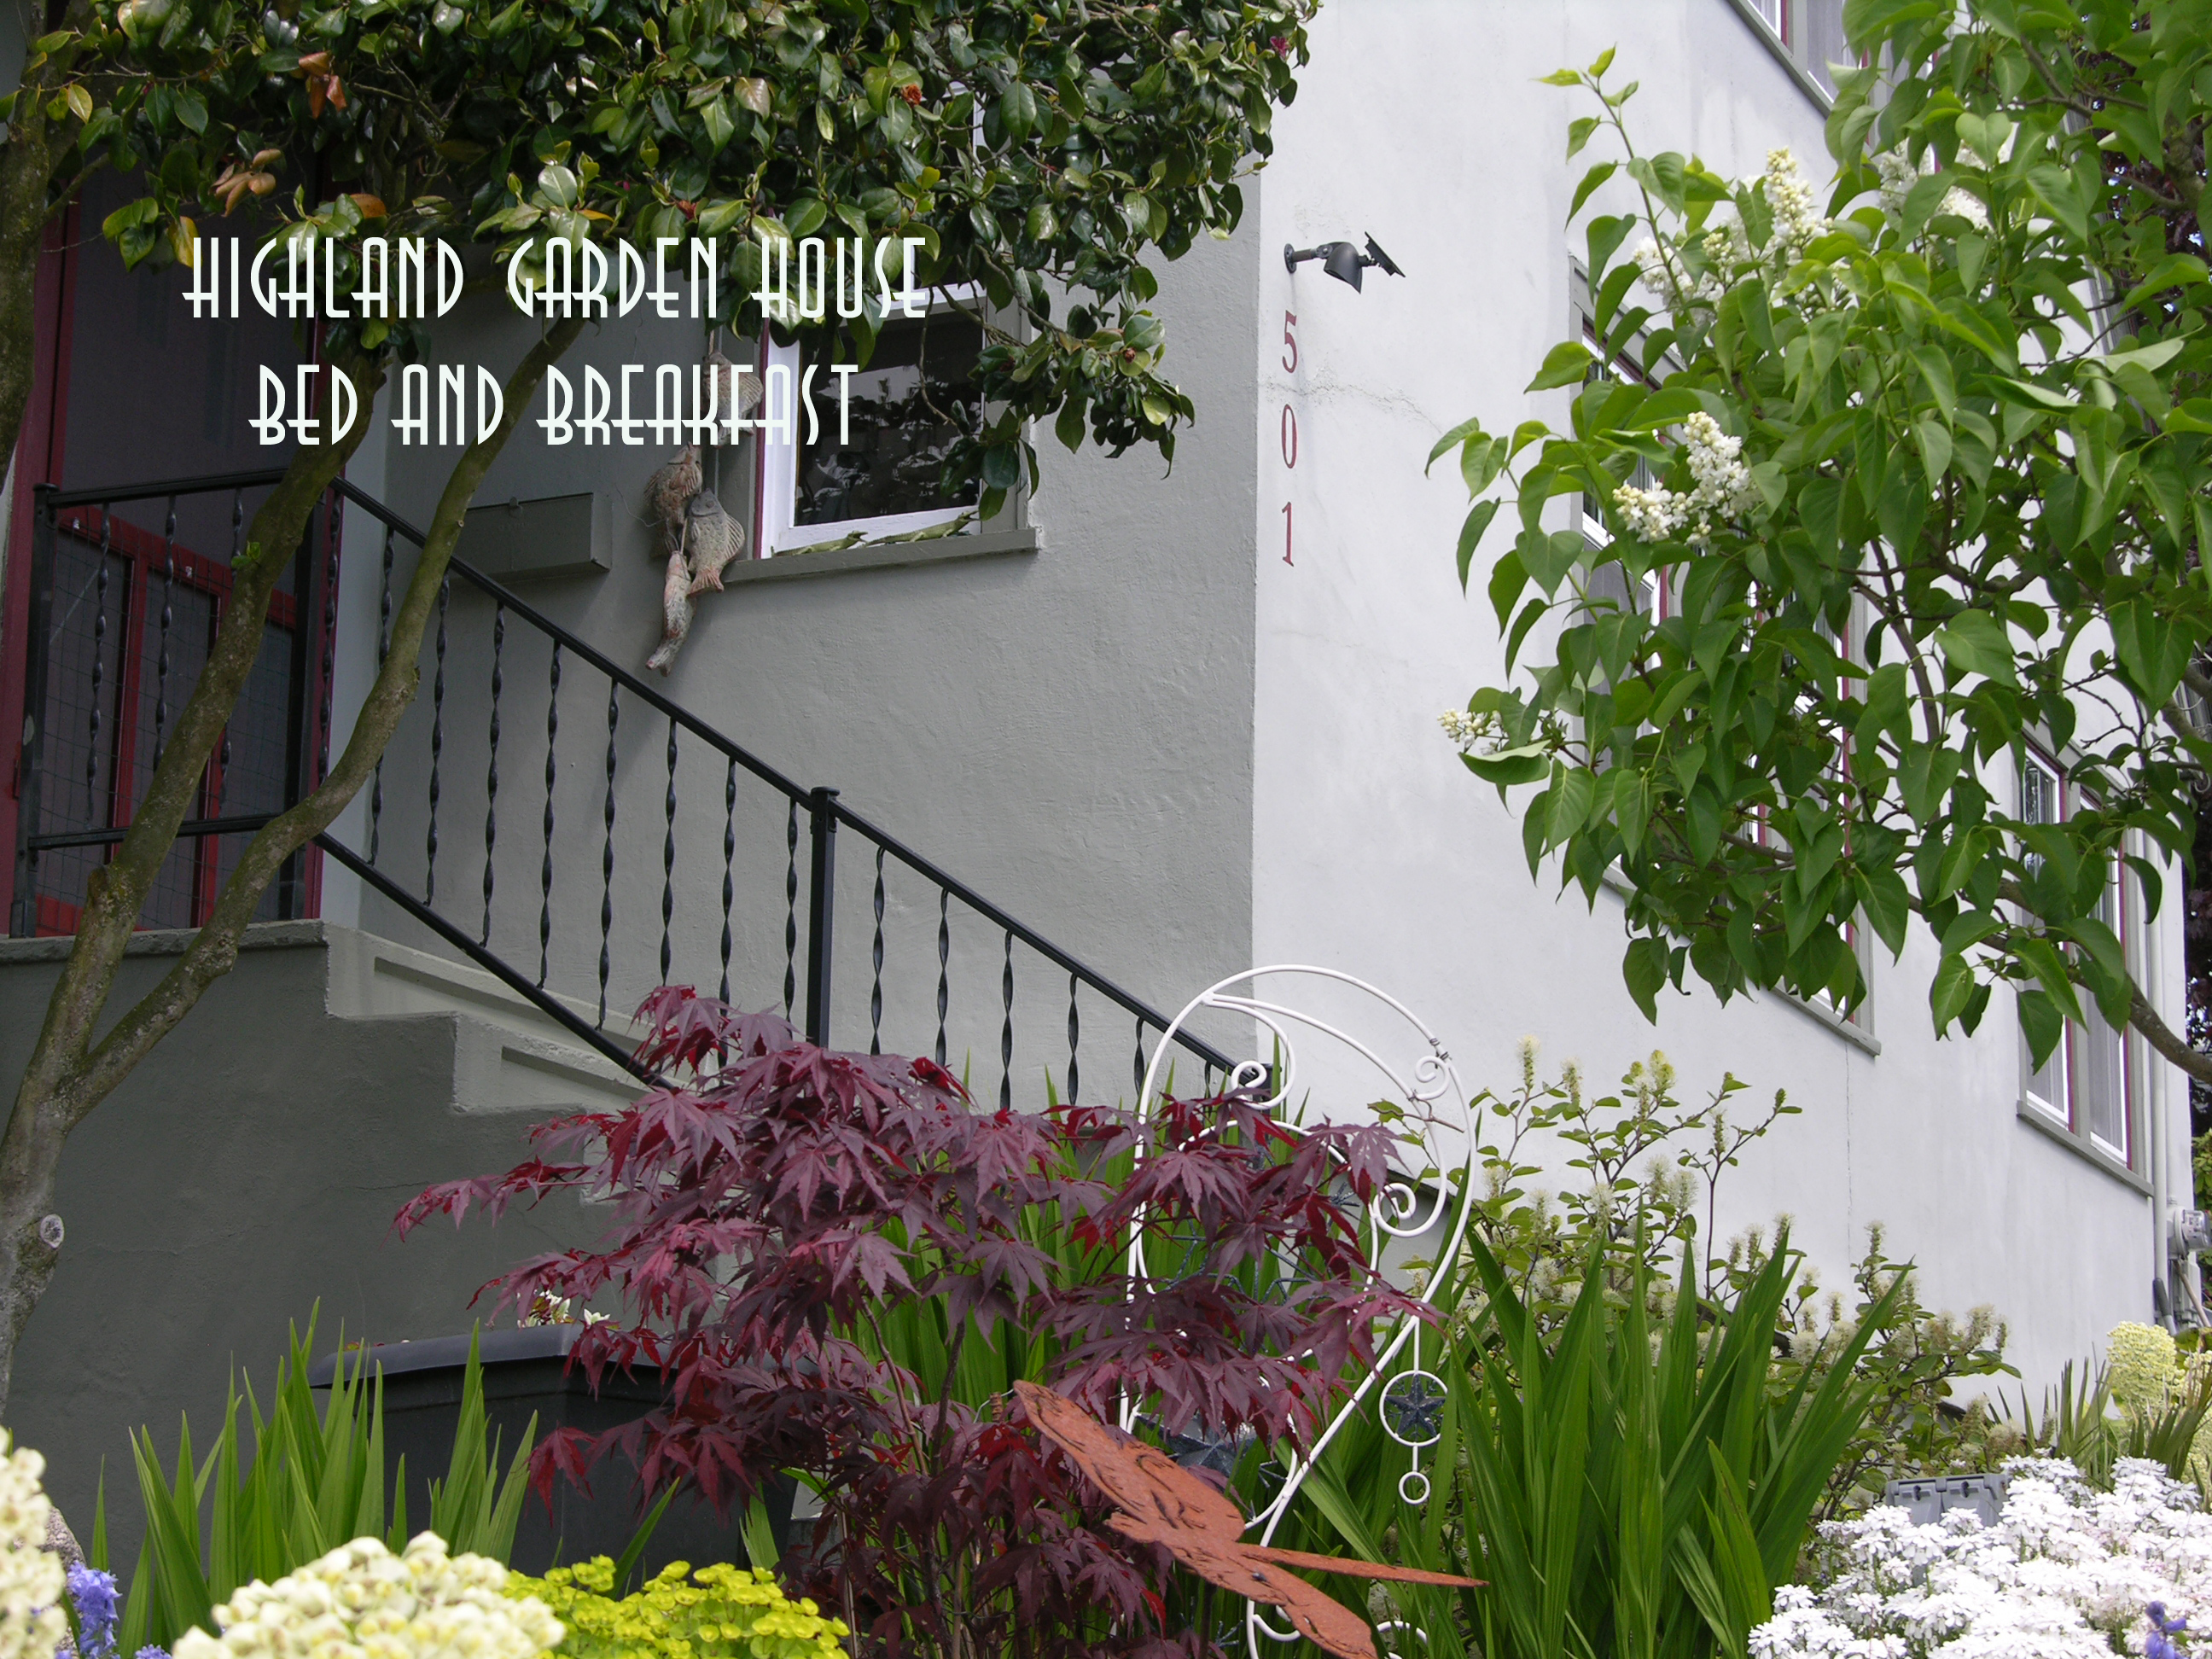 Highland Garden House Bed and Breakfast, Mount Vernon WA